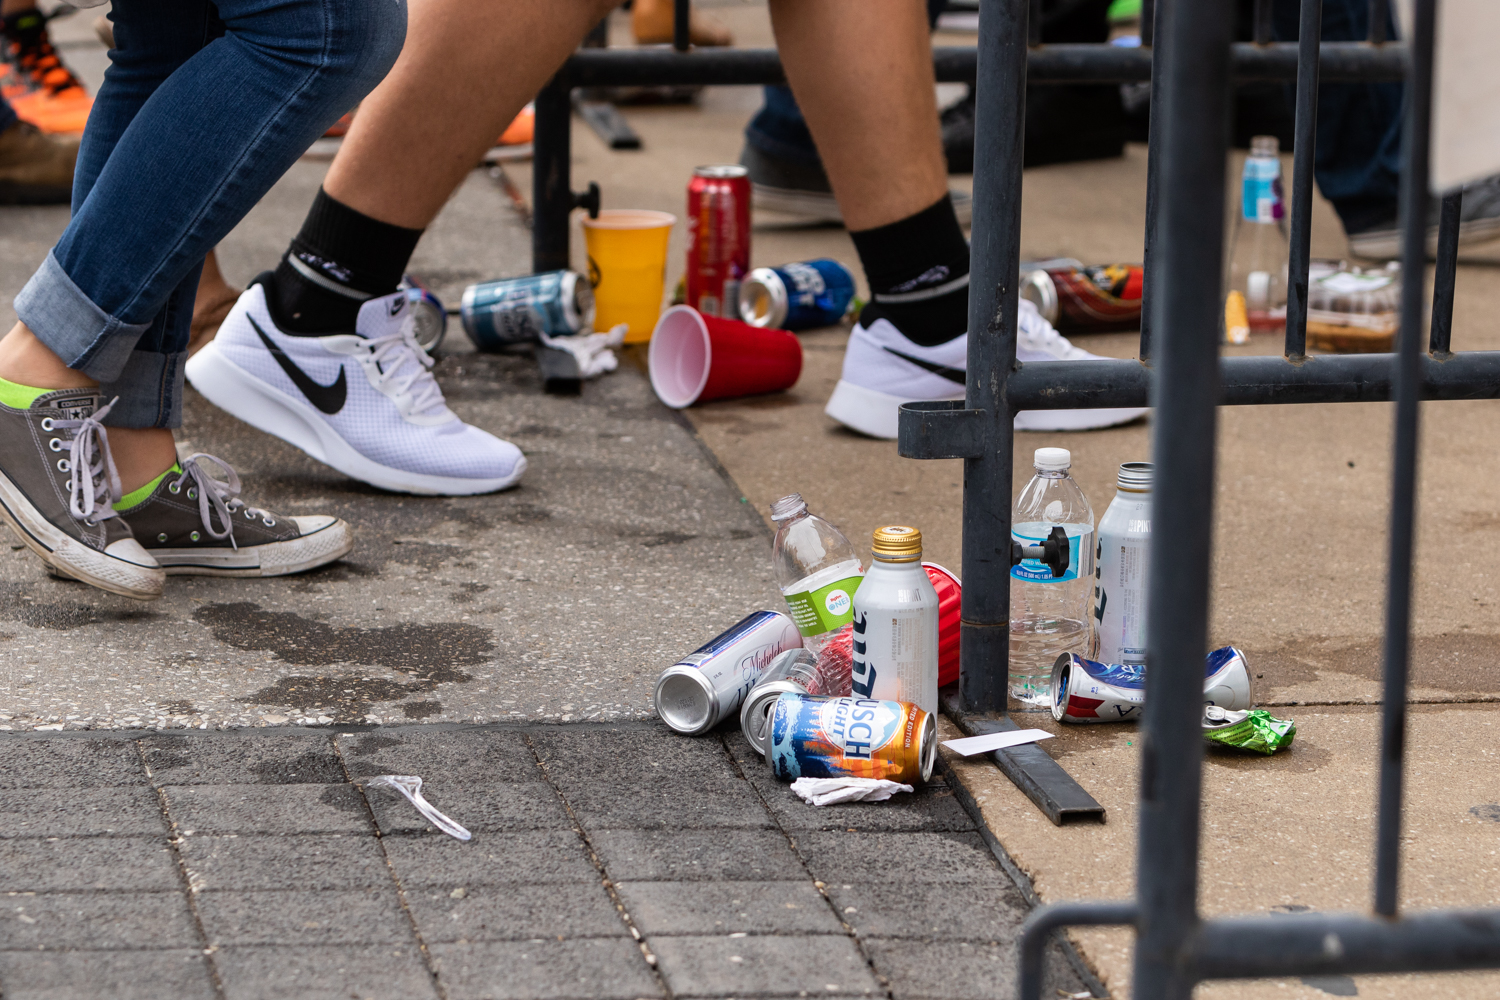 Fans walk past empty beer cans and cups as they enter Kinnick Stadium before a football game against Iowa State University on Saturday, Sept. 8, 2018.